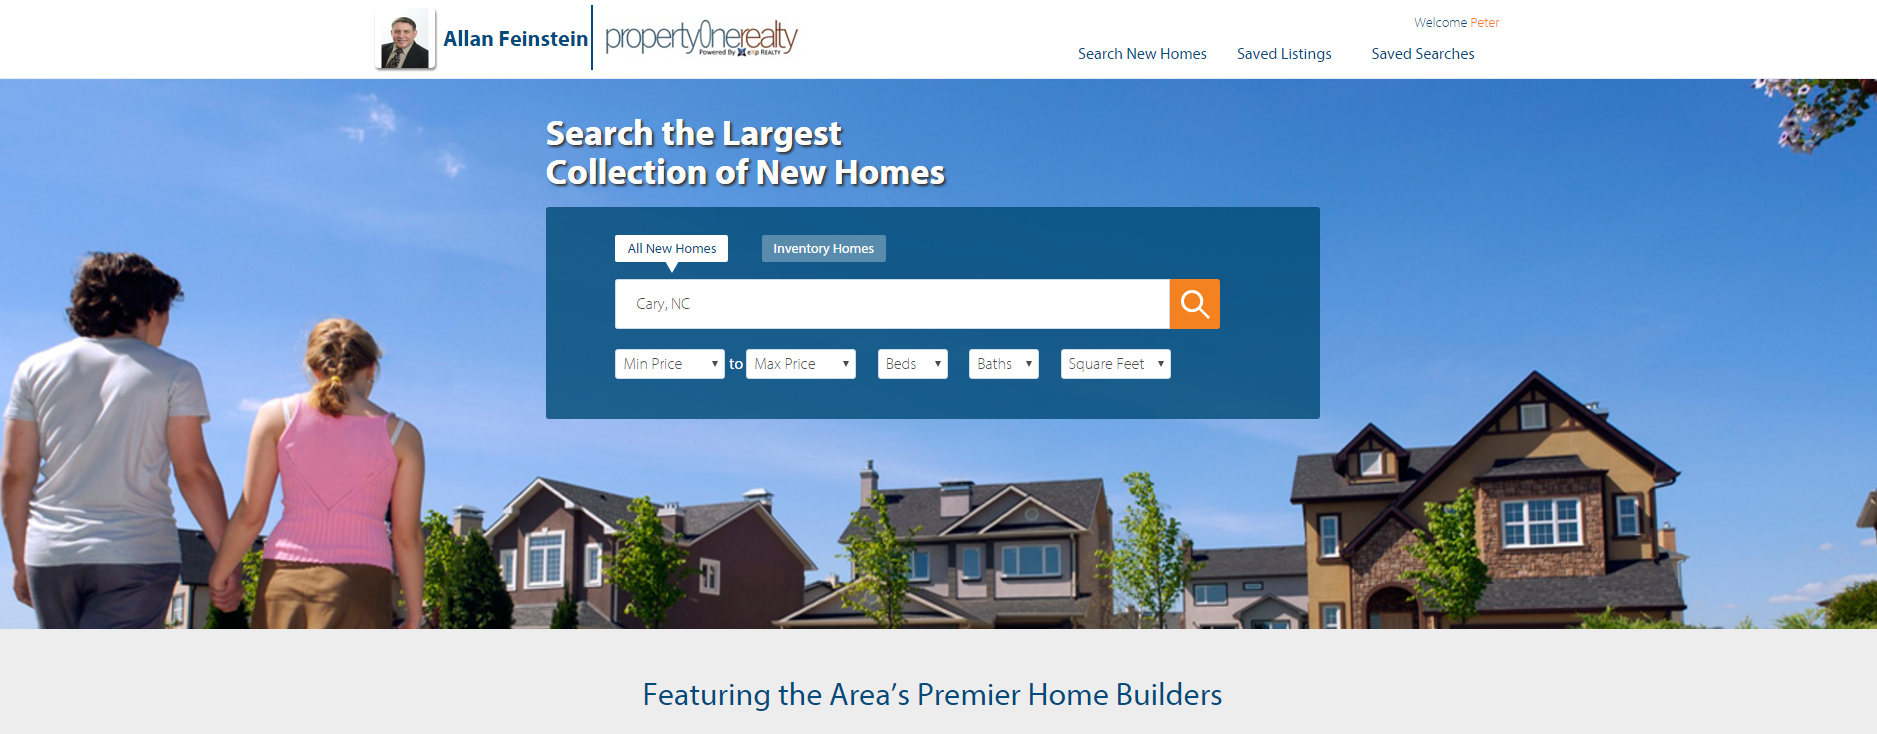 Search the Largest Collection of New Homes